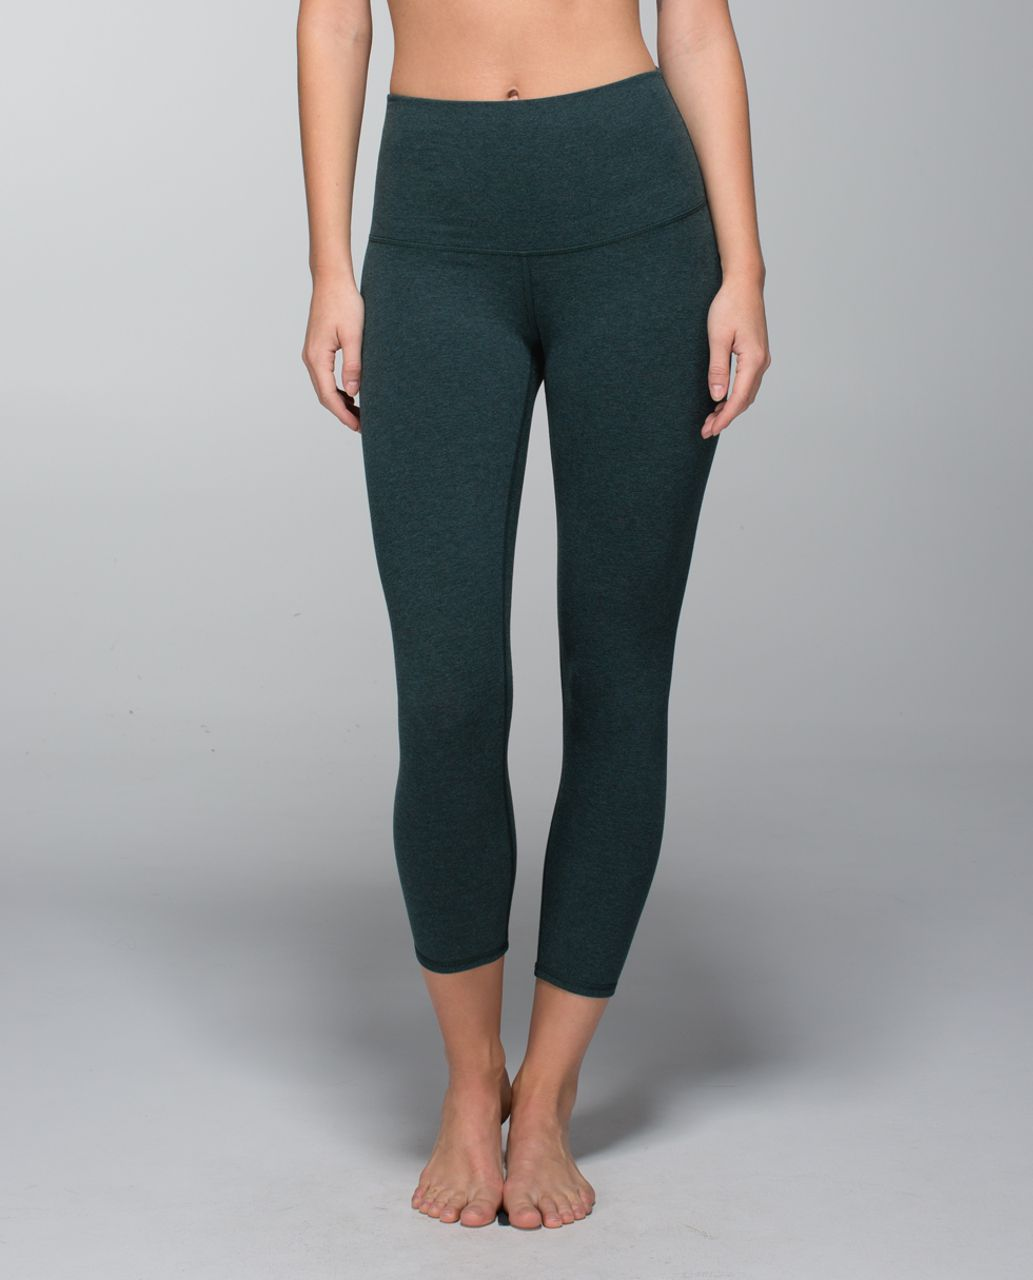 Lululemon Wunder Under Crop II *Cotton (Roll Down) - Heathered Fuel Green